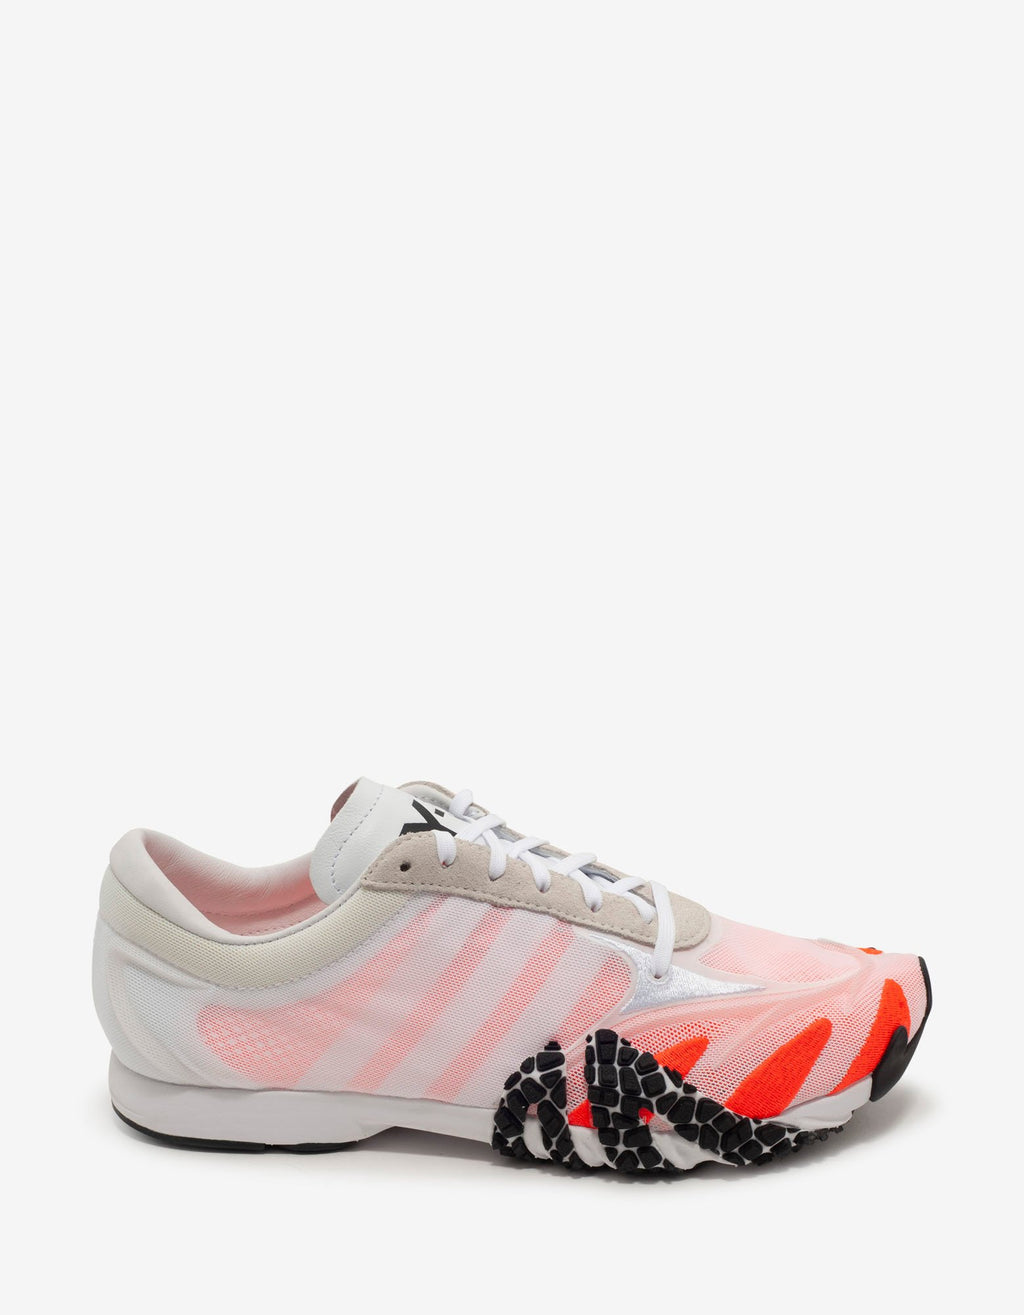 Rehito White & Orange Trainers -